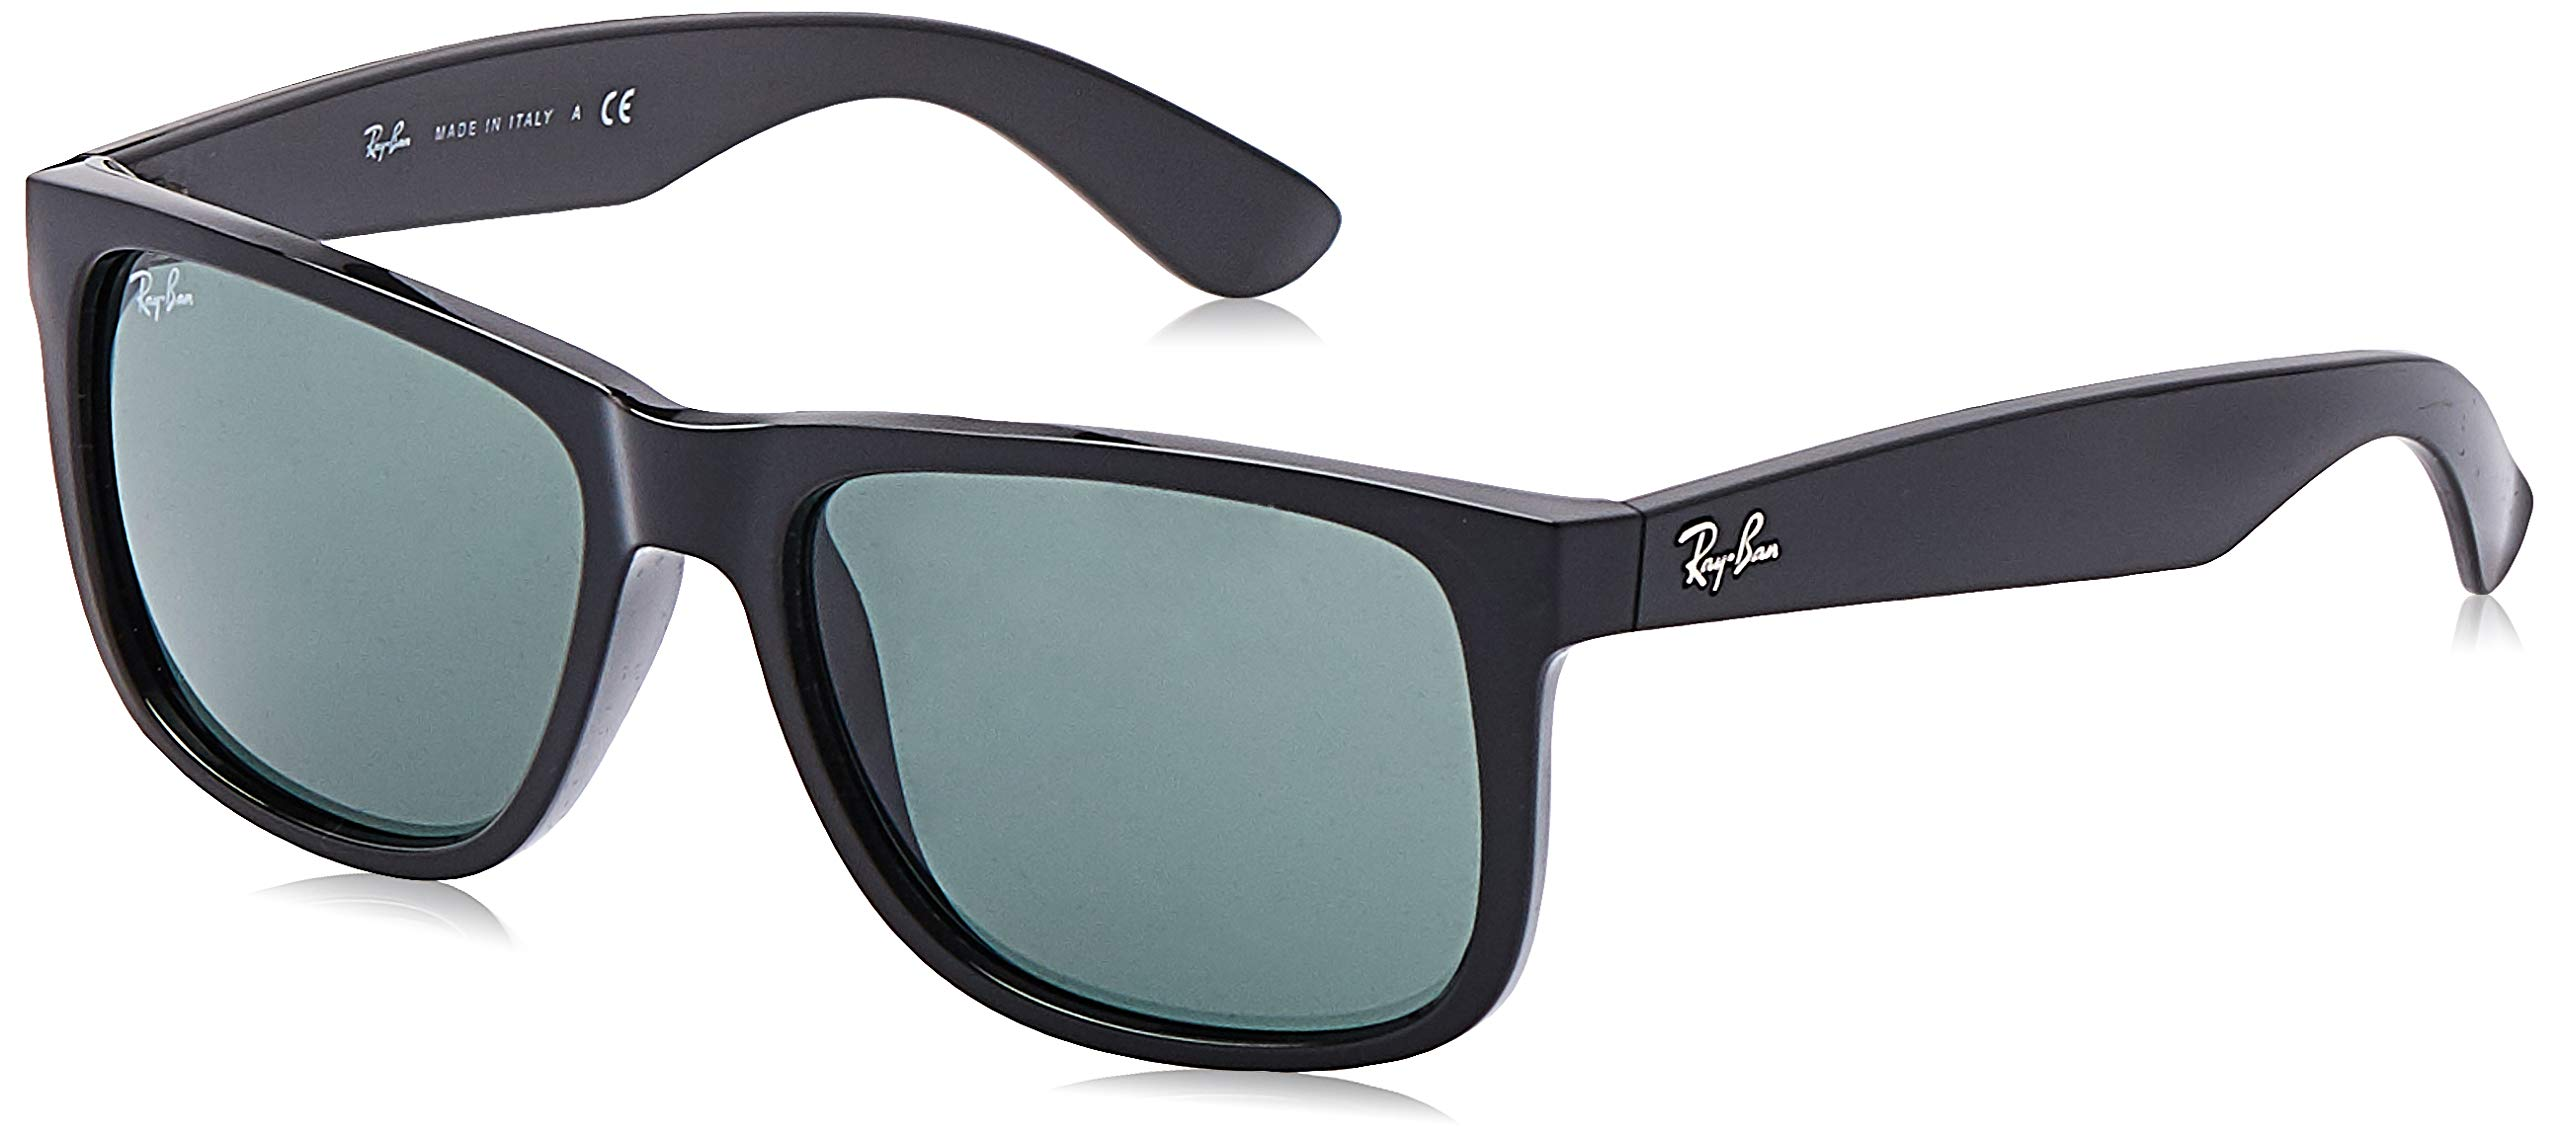 RAY-BAN RB4165 Justin Rectangular Sunglasses, Black/Green, 55 mm by RAY-BAN